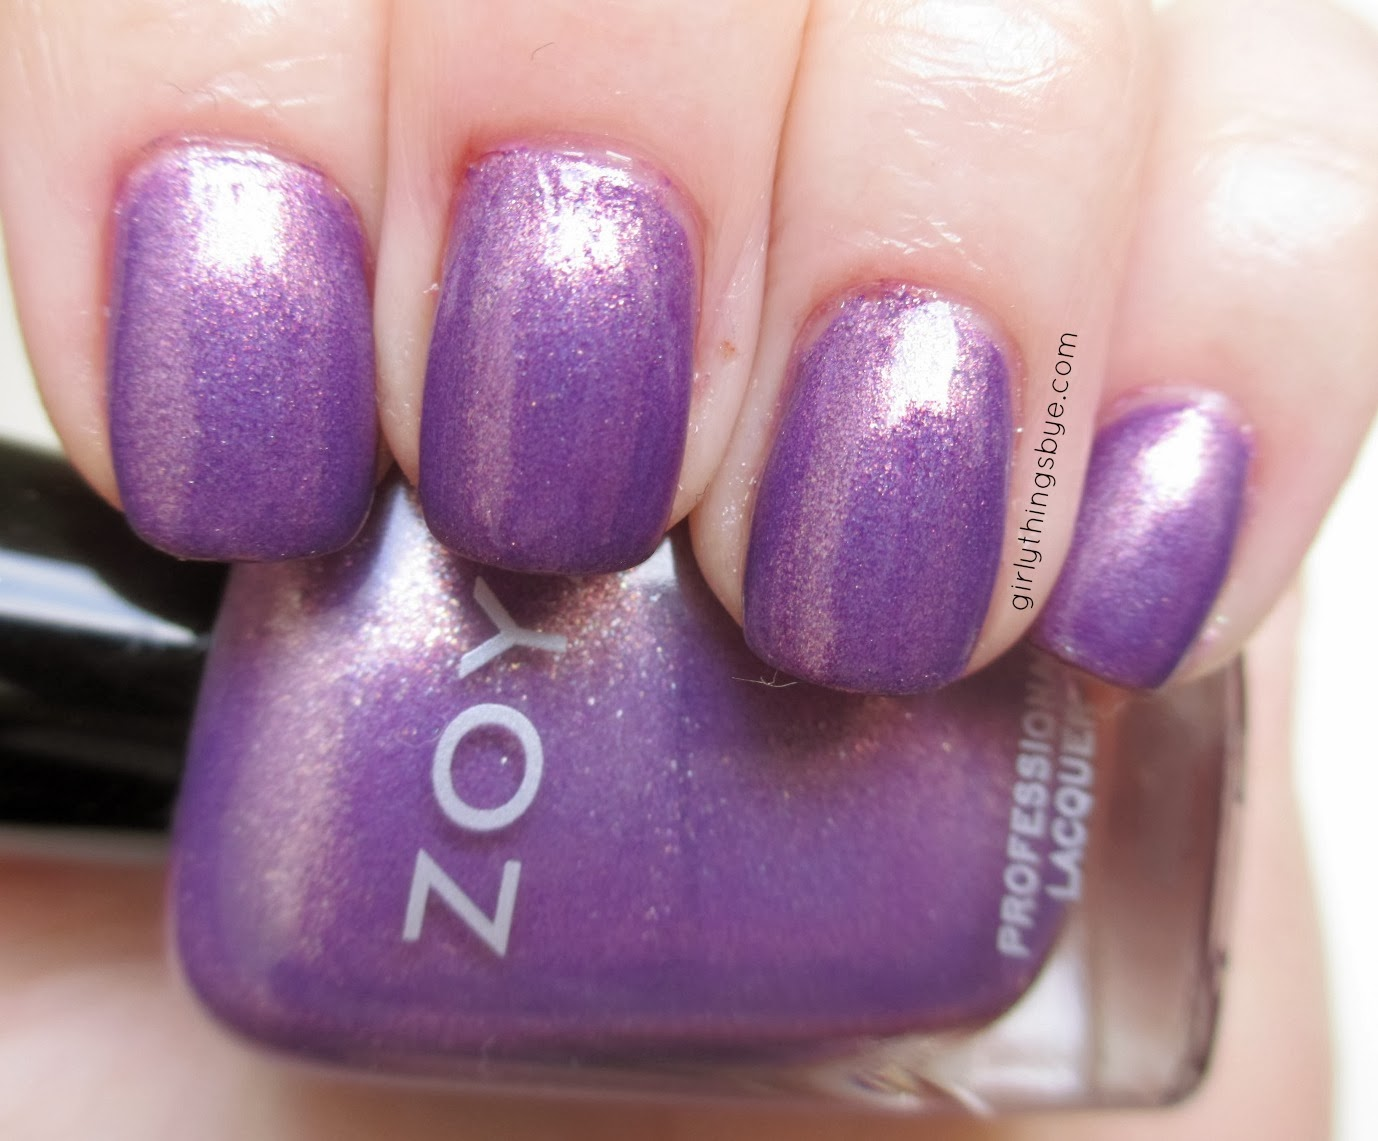 Zoya Dannii, swatch, nail polish, radiant orchid, @girlythingsby_e